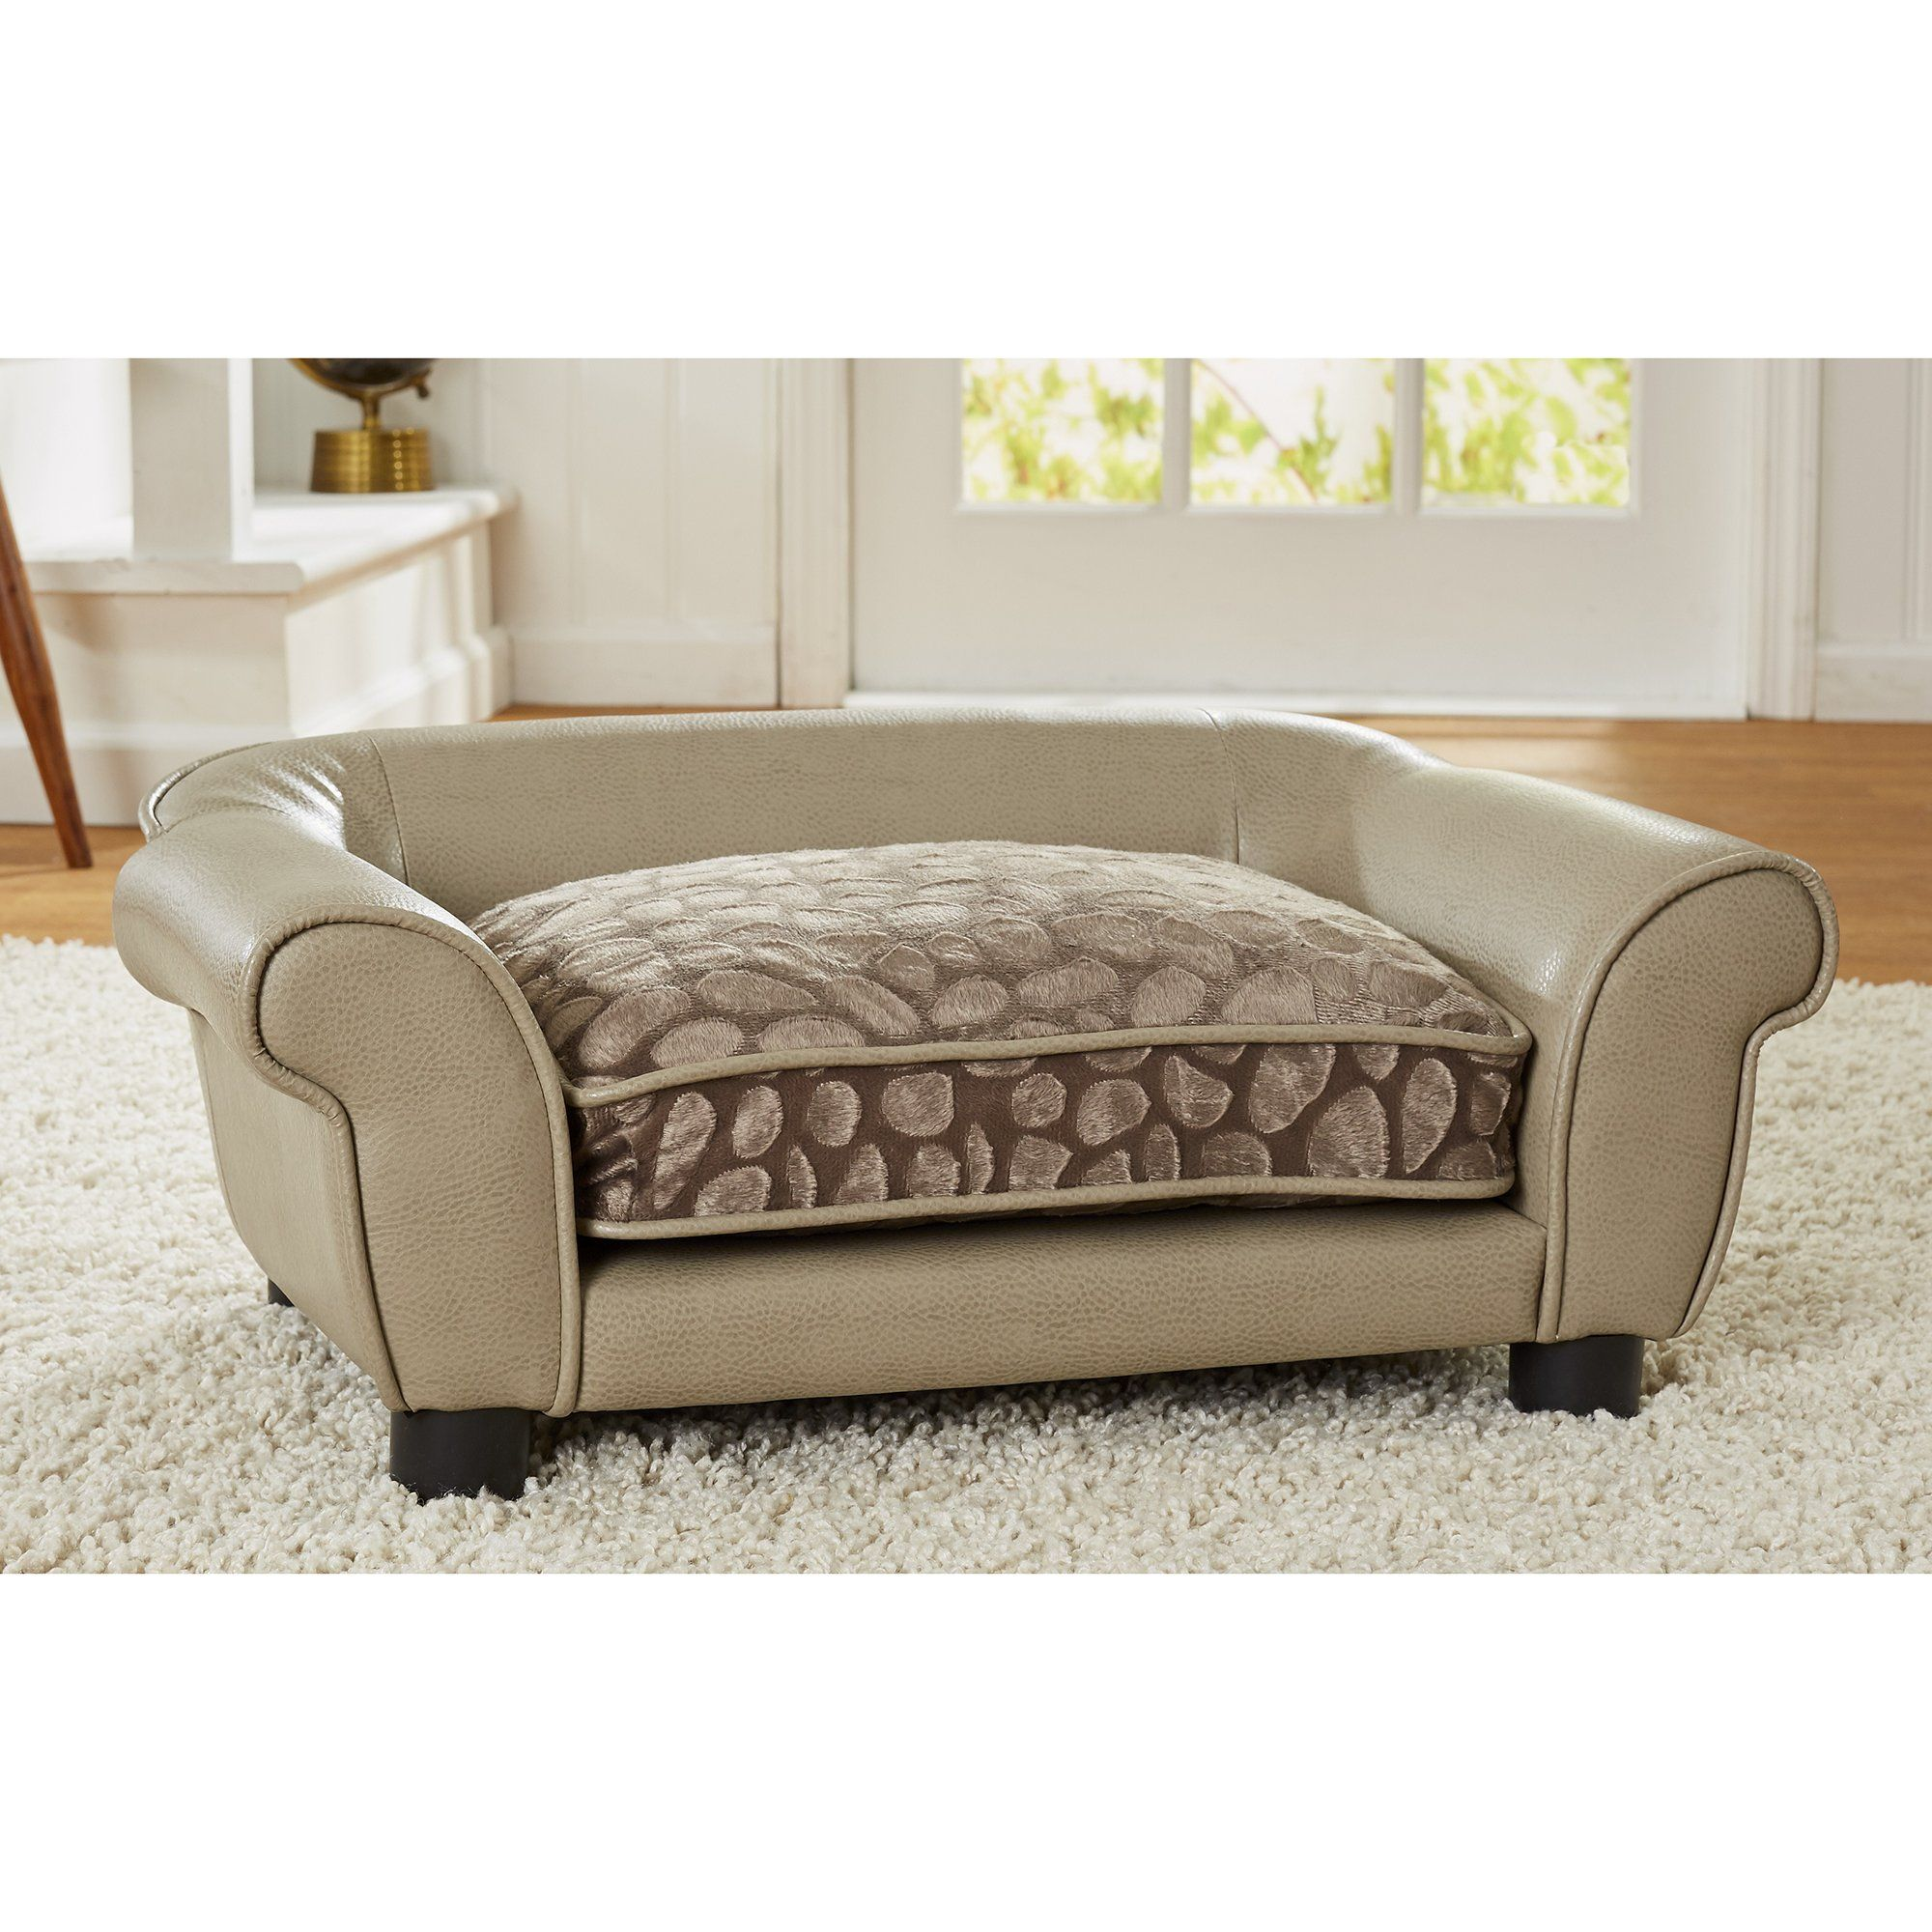 Enjoyable Enchanted Home Pet Rocco Sofa Stone Pewter For Dog 28 37 Forskolin Free Trial Chair Design Images Forskolin Free Trialorg